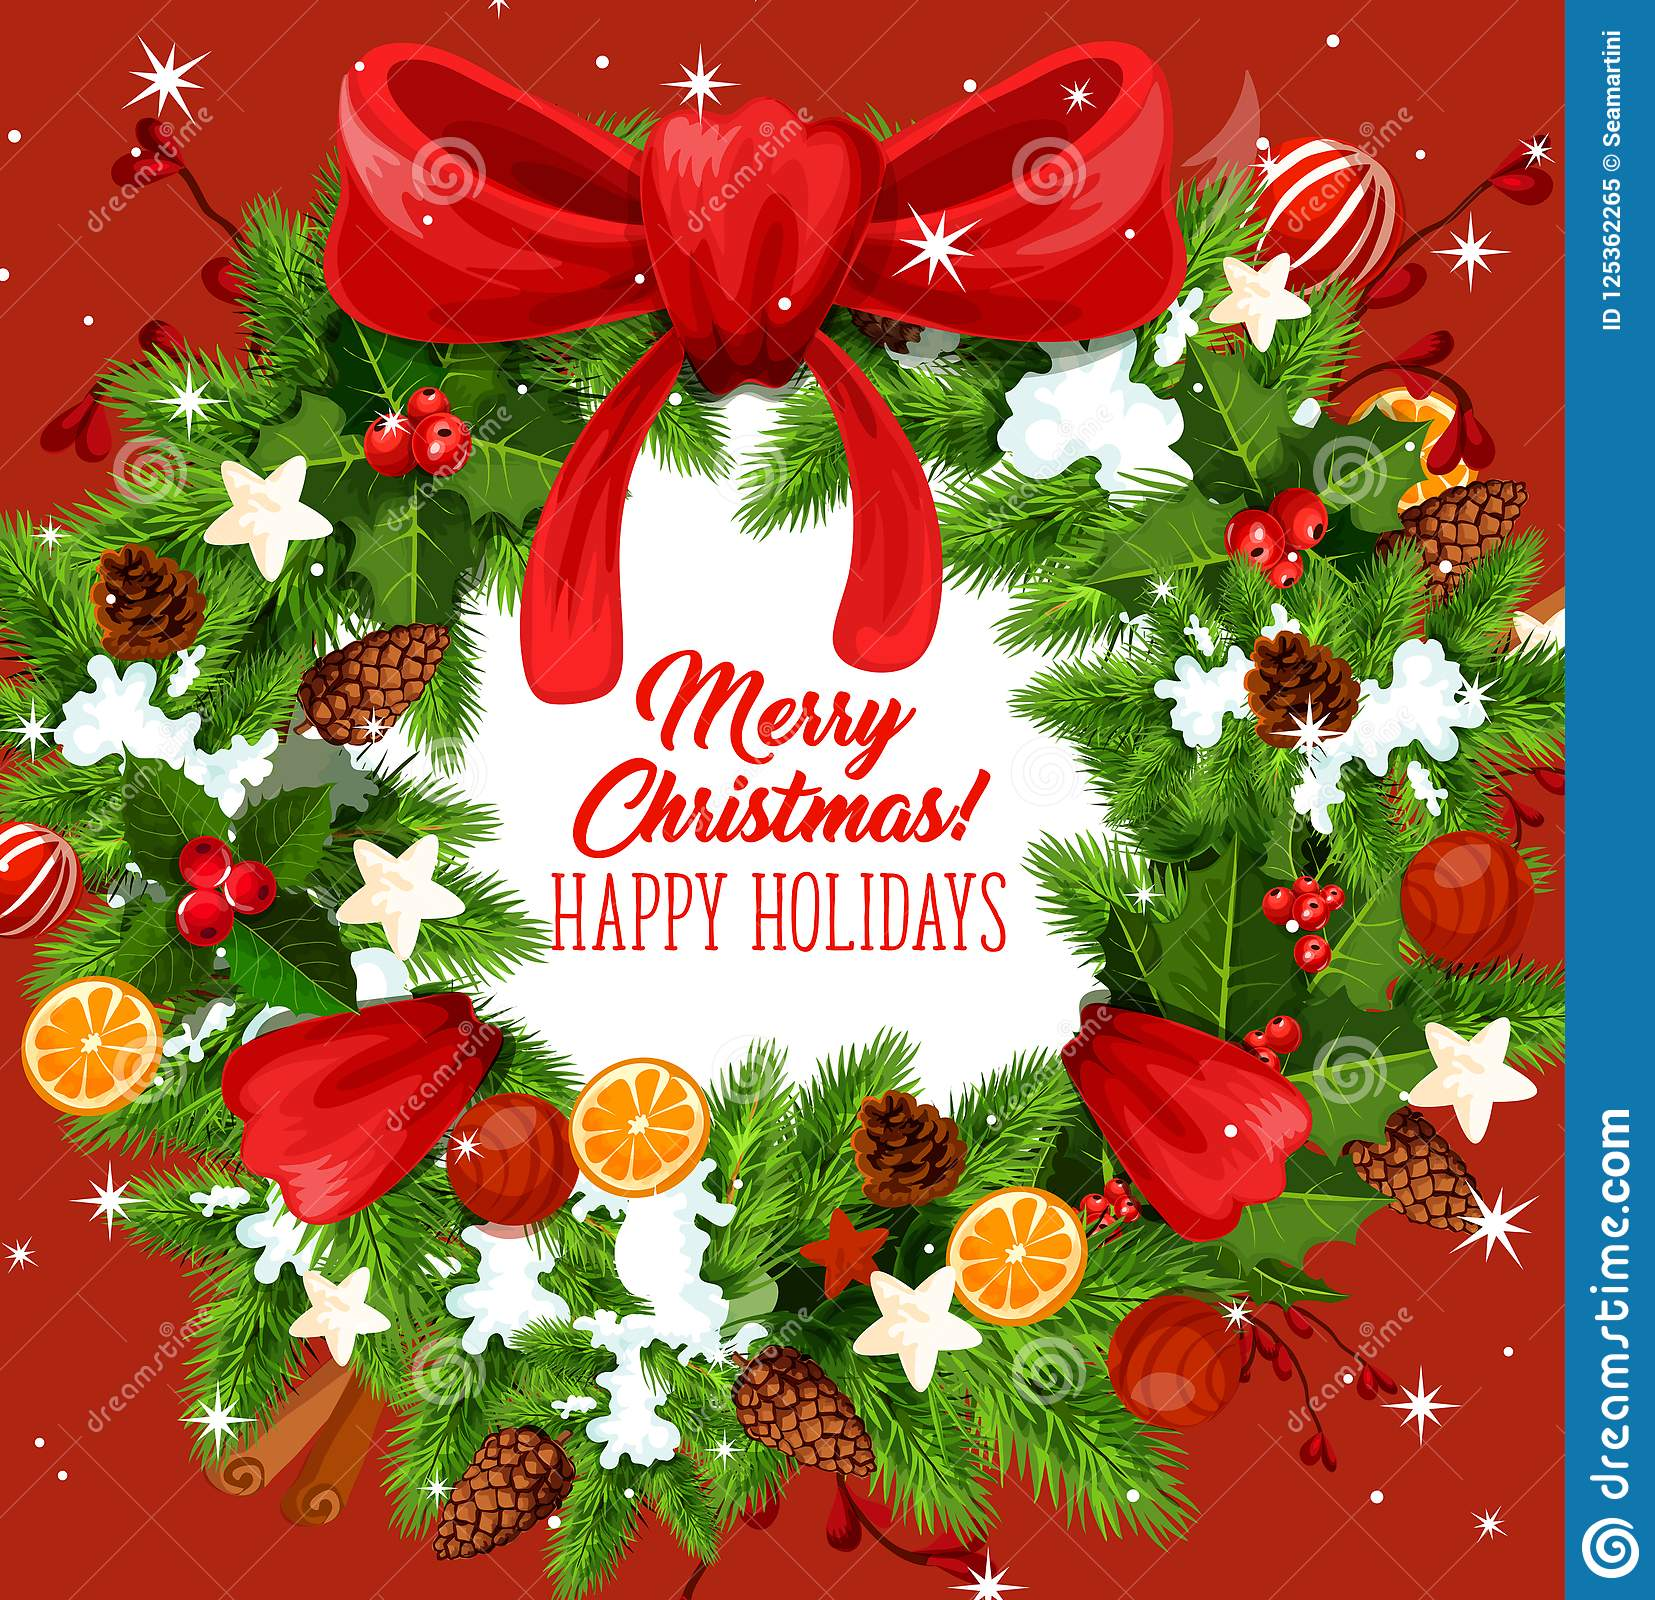 Christmas Wreath Greeting Card Of New Year Holiday Stock Vector